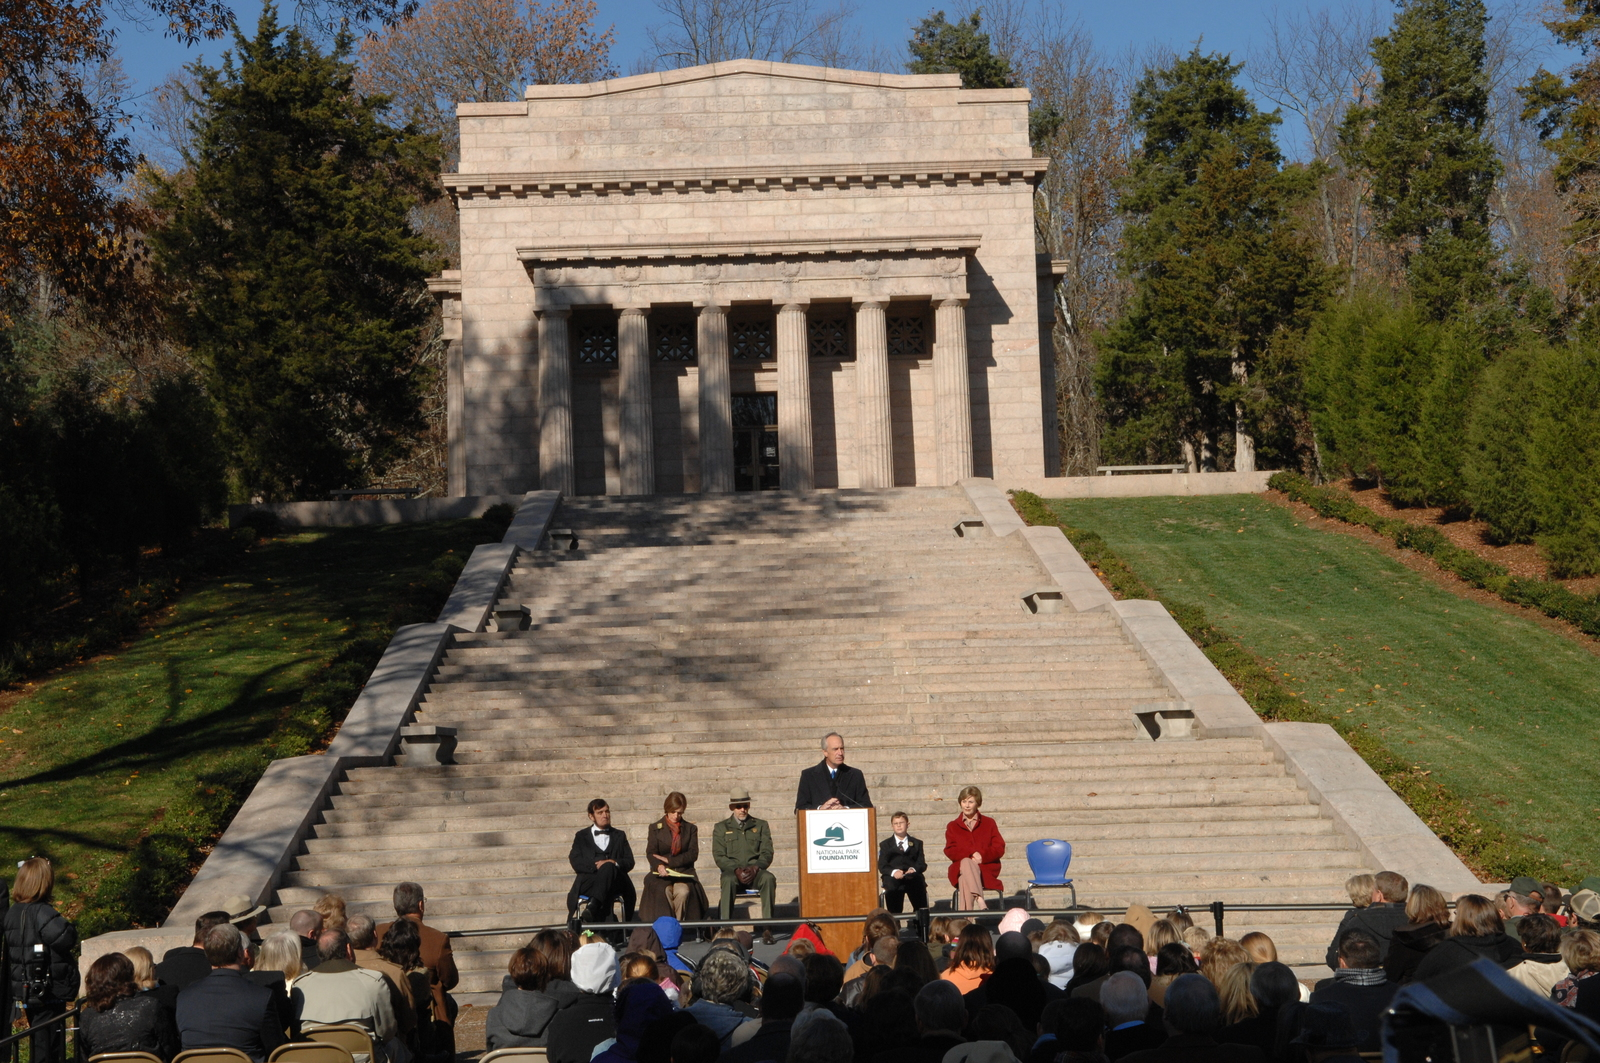 [Assignment: 48-DPA-11-18-08_SOI_K_FLOTUS] Visit of Secretary Dirk Kempthorne to the Abraham Lincoln Birthplace National Historic Site in Hodgenville, Kentucky, where he joined First Lady Laura Bush, [Historic Site Superintendent Keith Pruitt, and Libby O'Connell, Chief Historian of A and E Television's History Channel, for tours, remarks, interactions with National Park Service staff and visitors] [48-DPA-11-18-08_SOI_K_FLOTUS_DOI_3850.JPG]